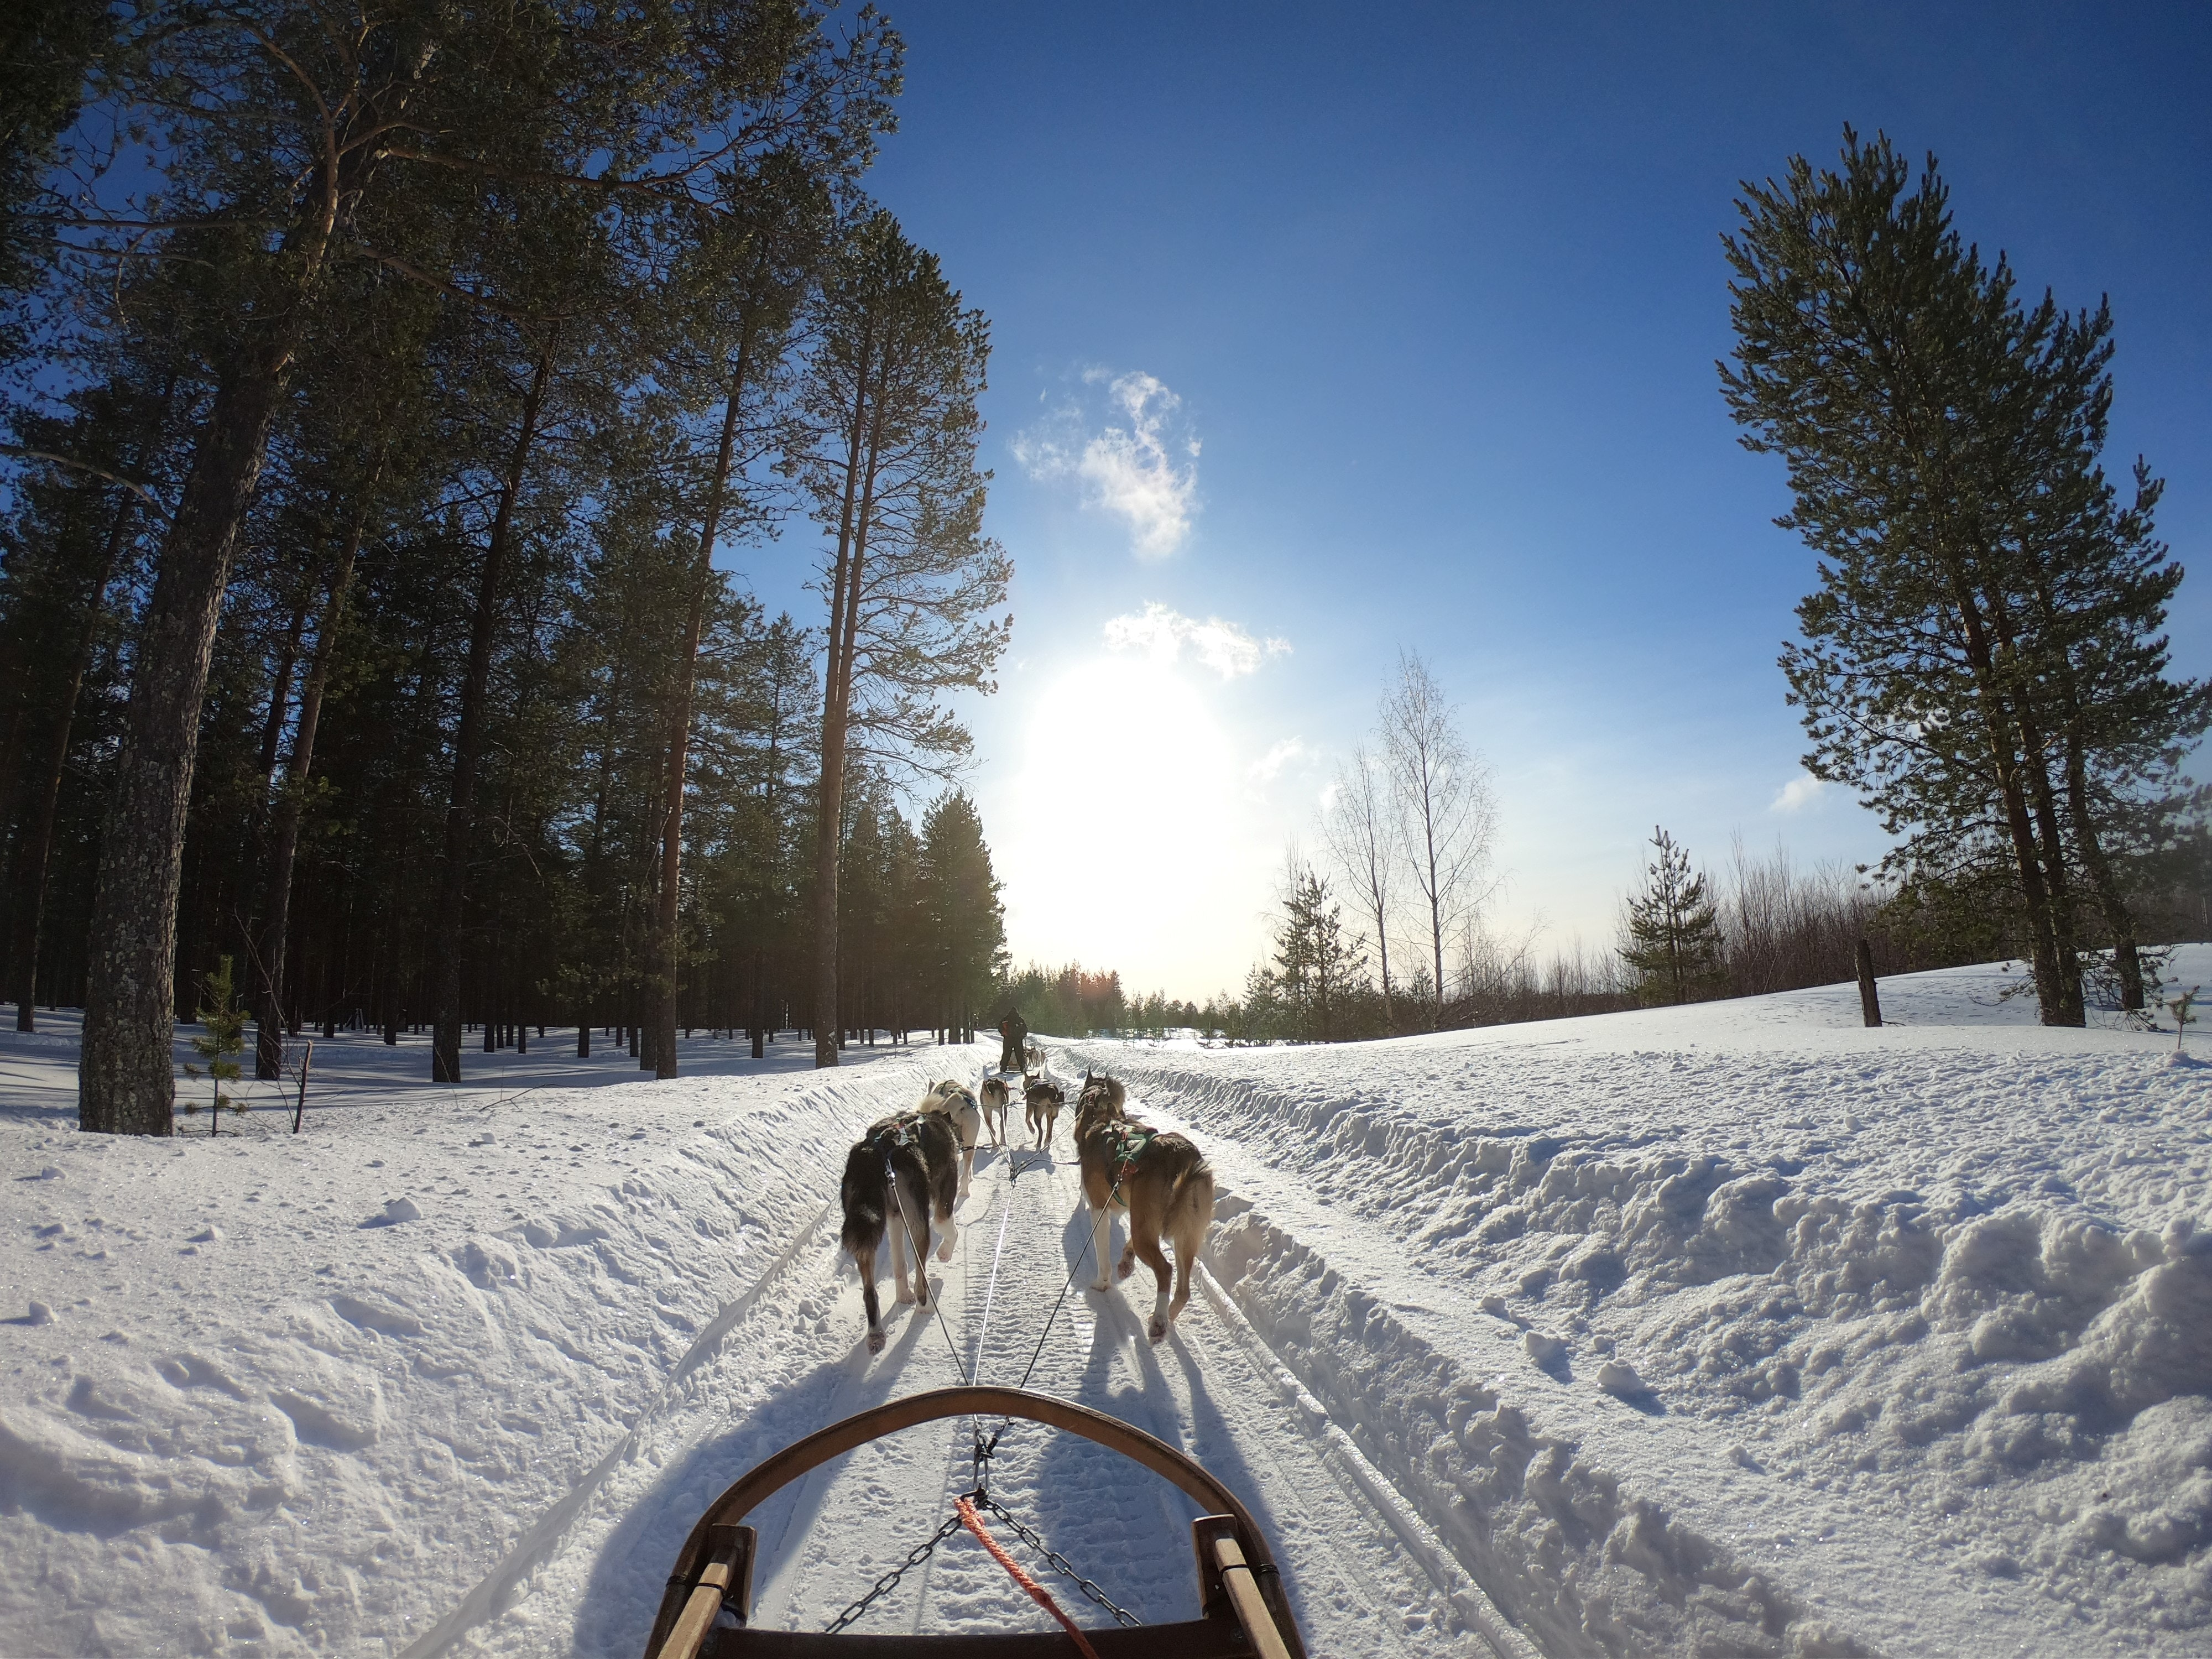 sled-pulled-by-dogs-2531014